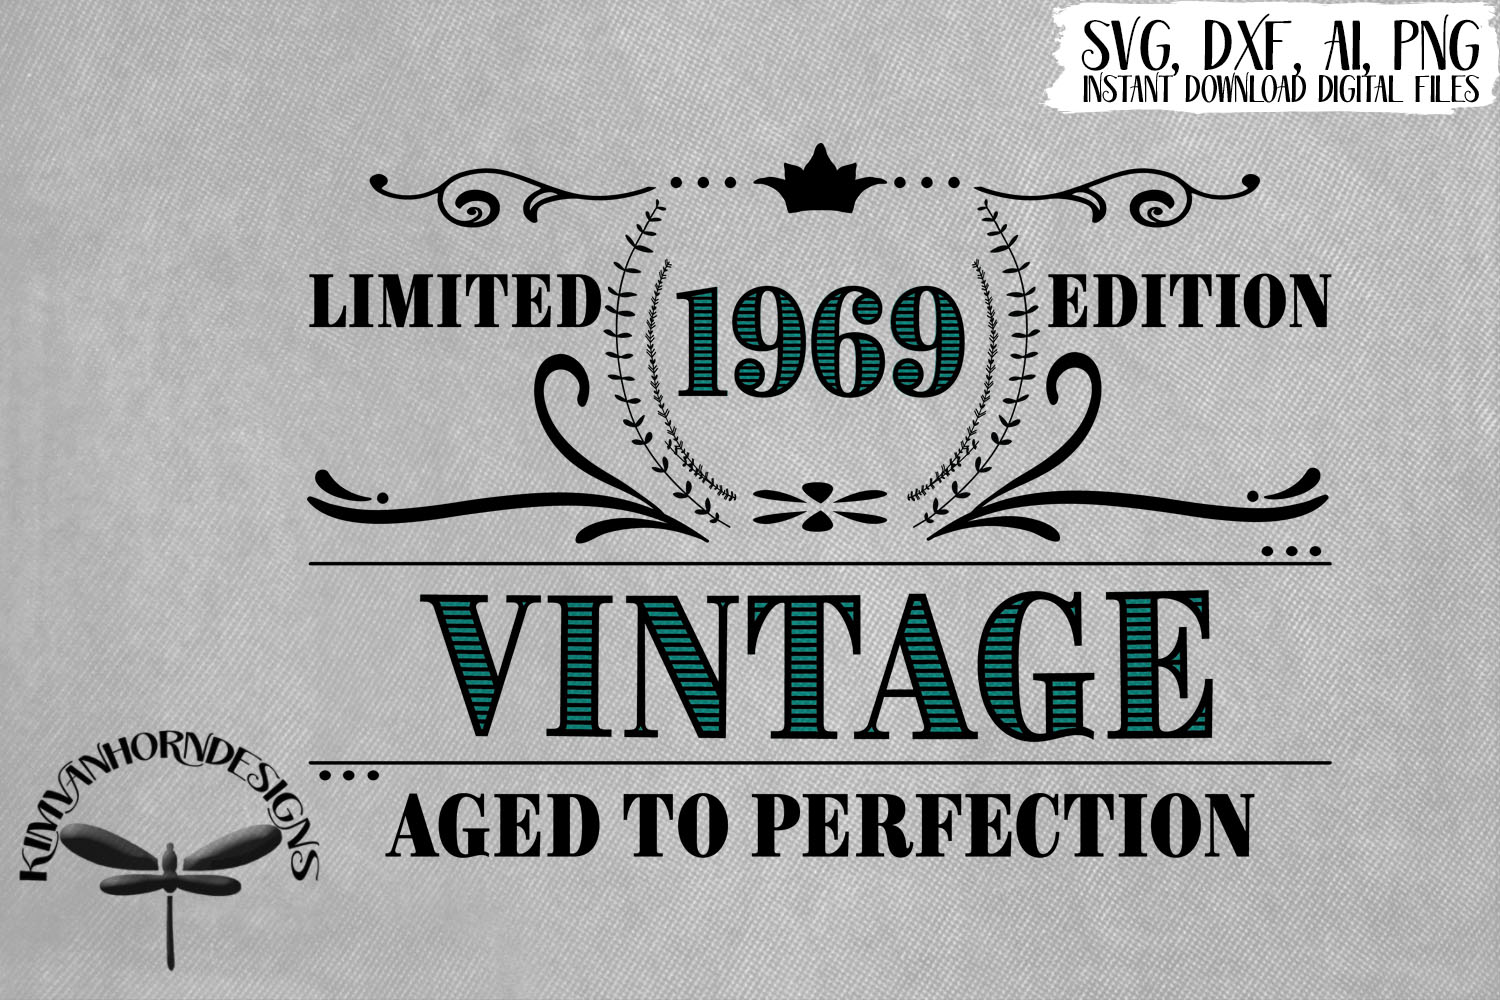 Vintage 1969 Aged to Perfection - 50th Birthday example image 1